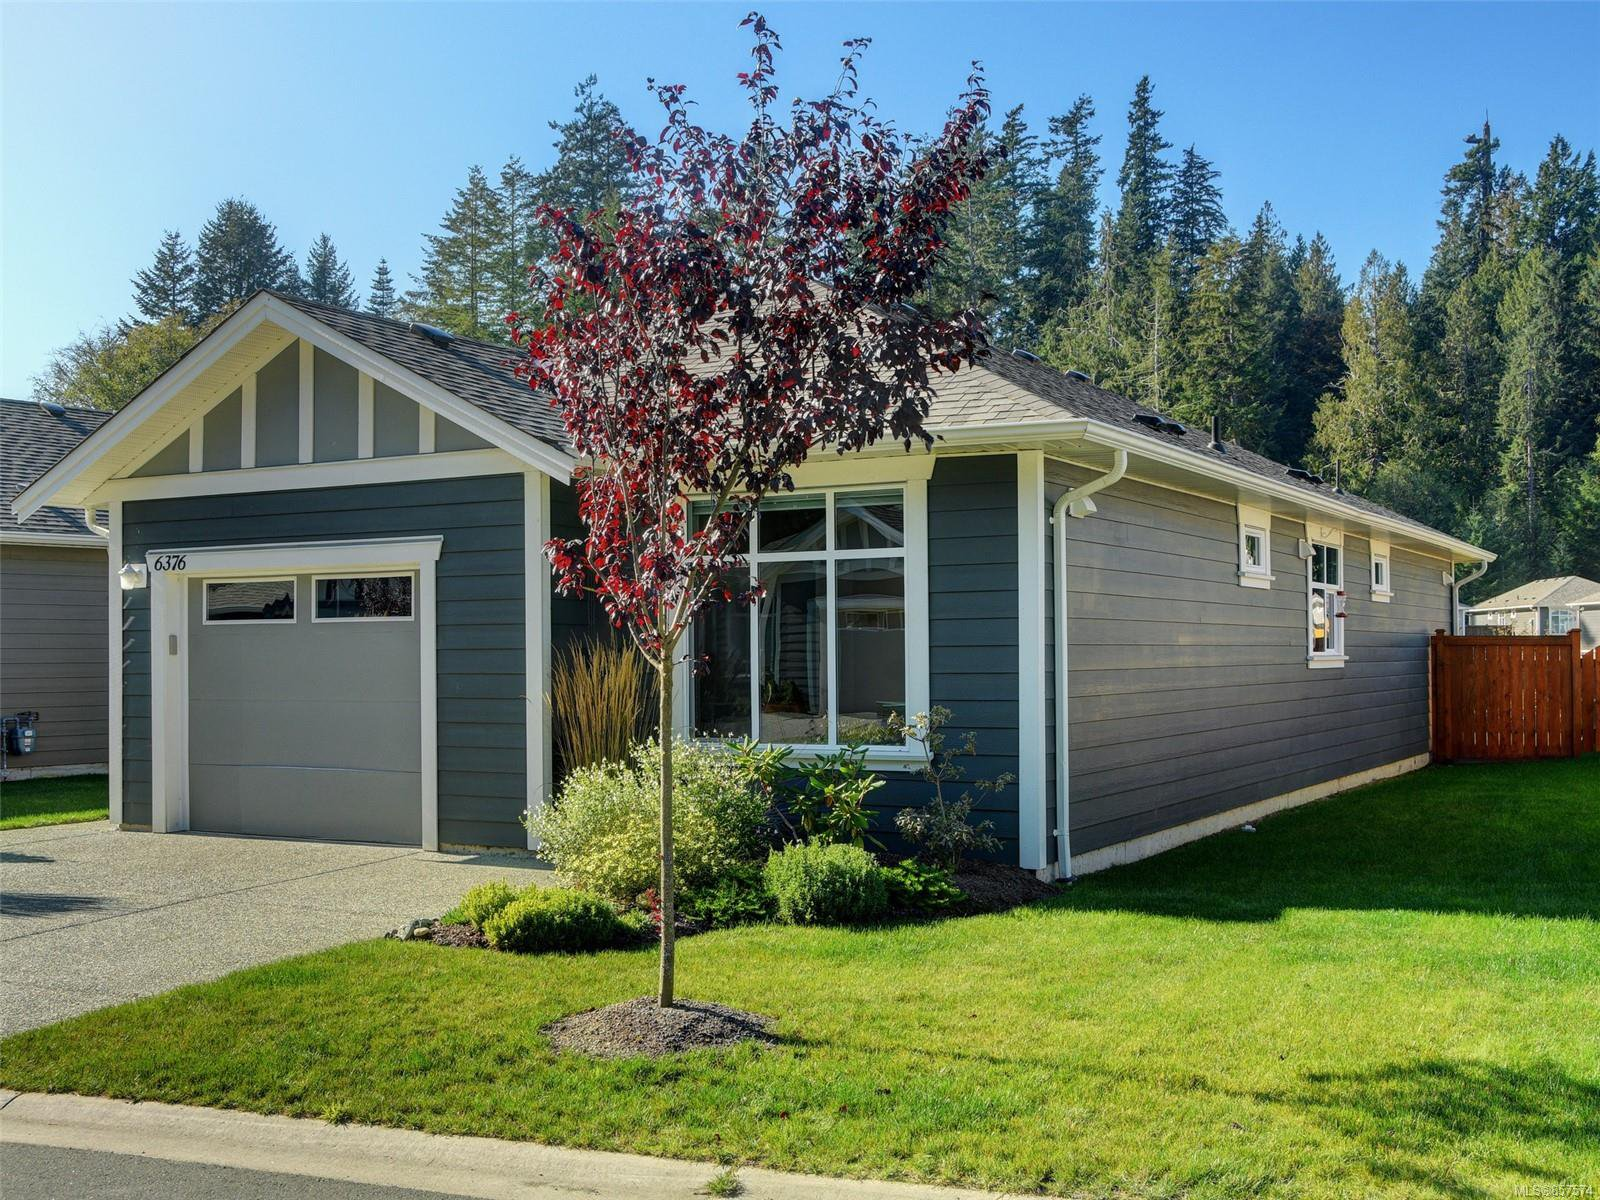 Main Photo: 6376 Shambrook Dr in : Sk Sunriver House for sale (Sooke)  : MLS®# 857574